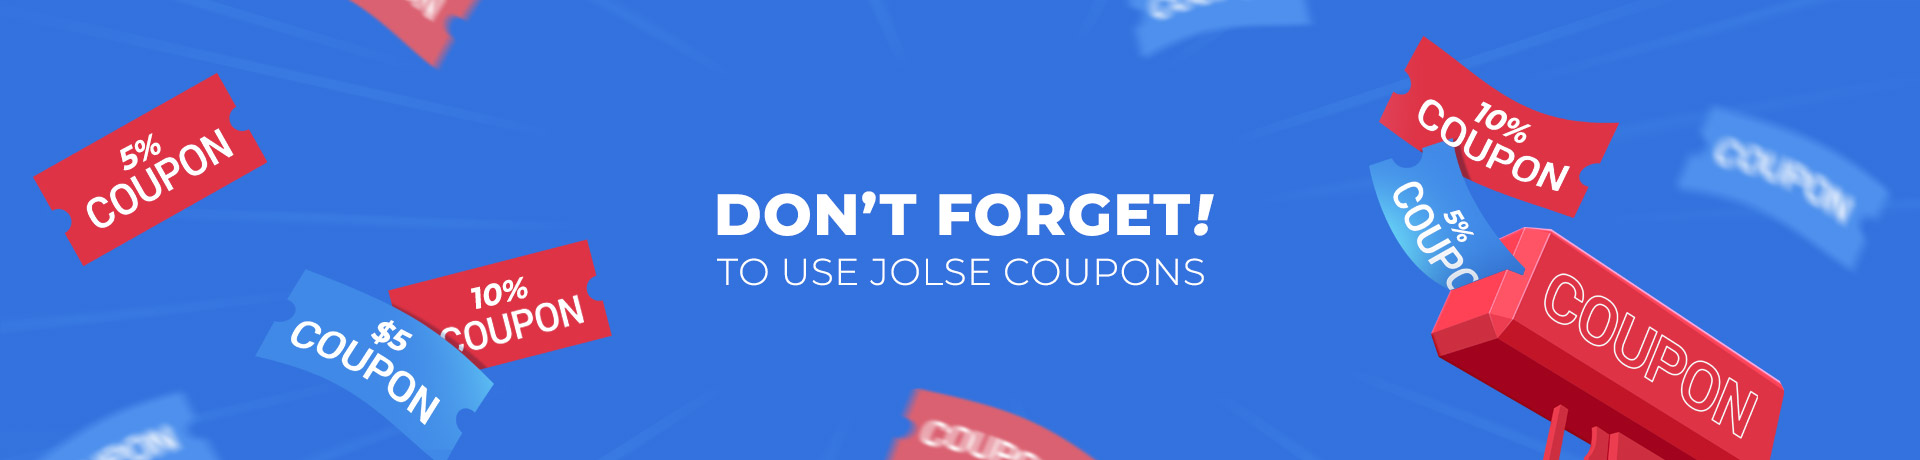 Download Coupons